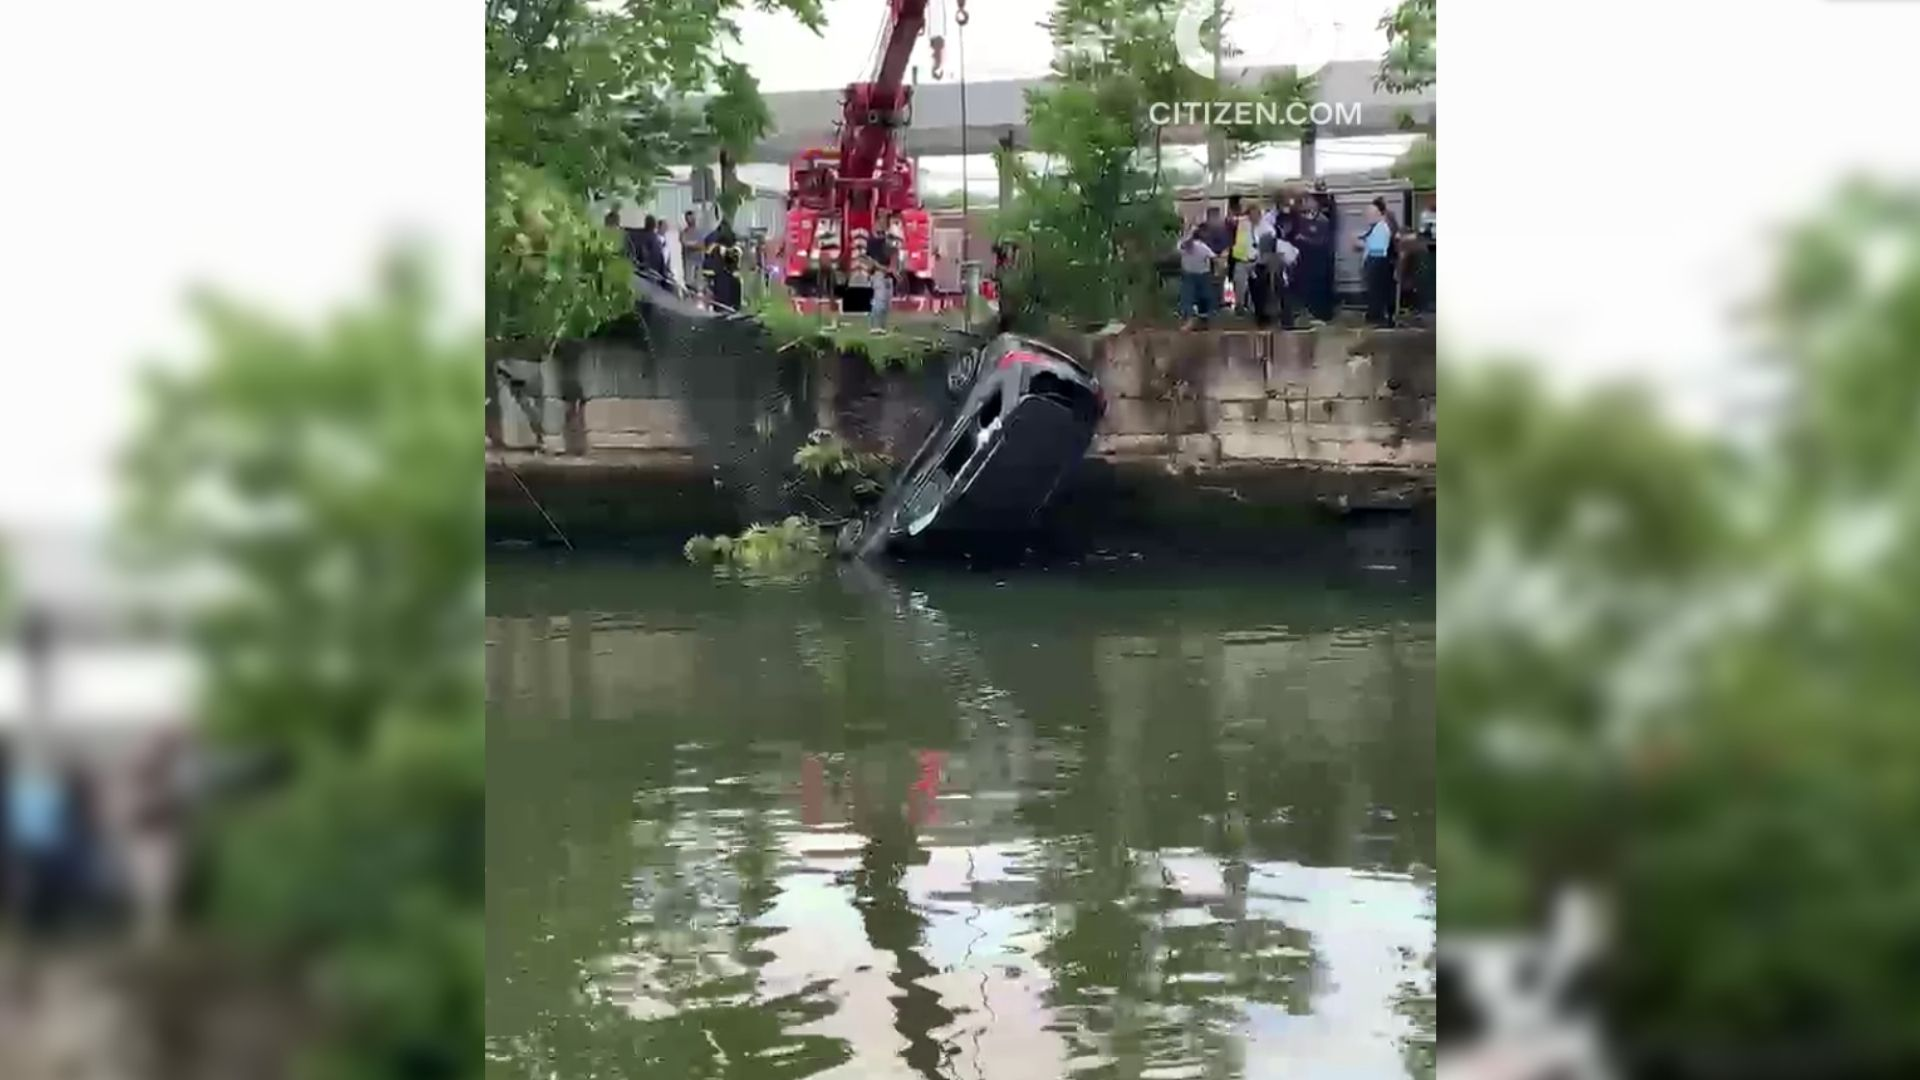 SUV into westchester canal